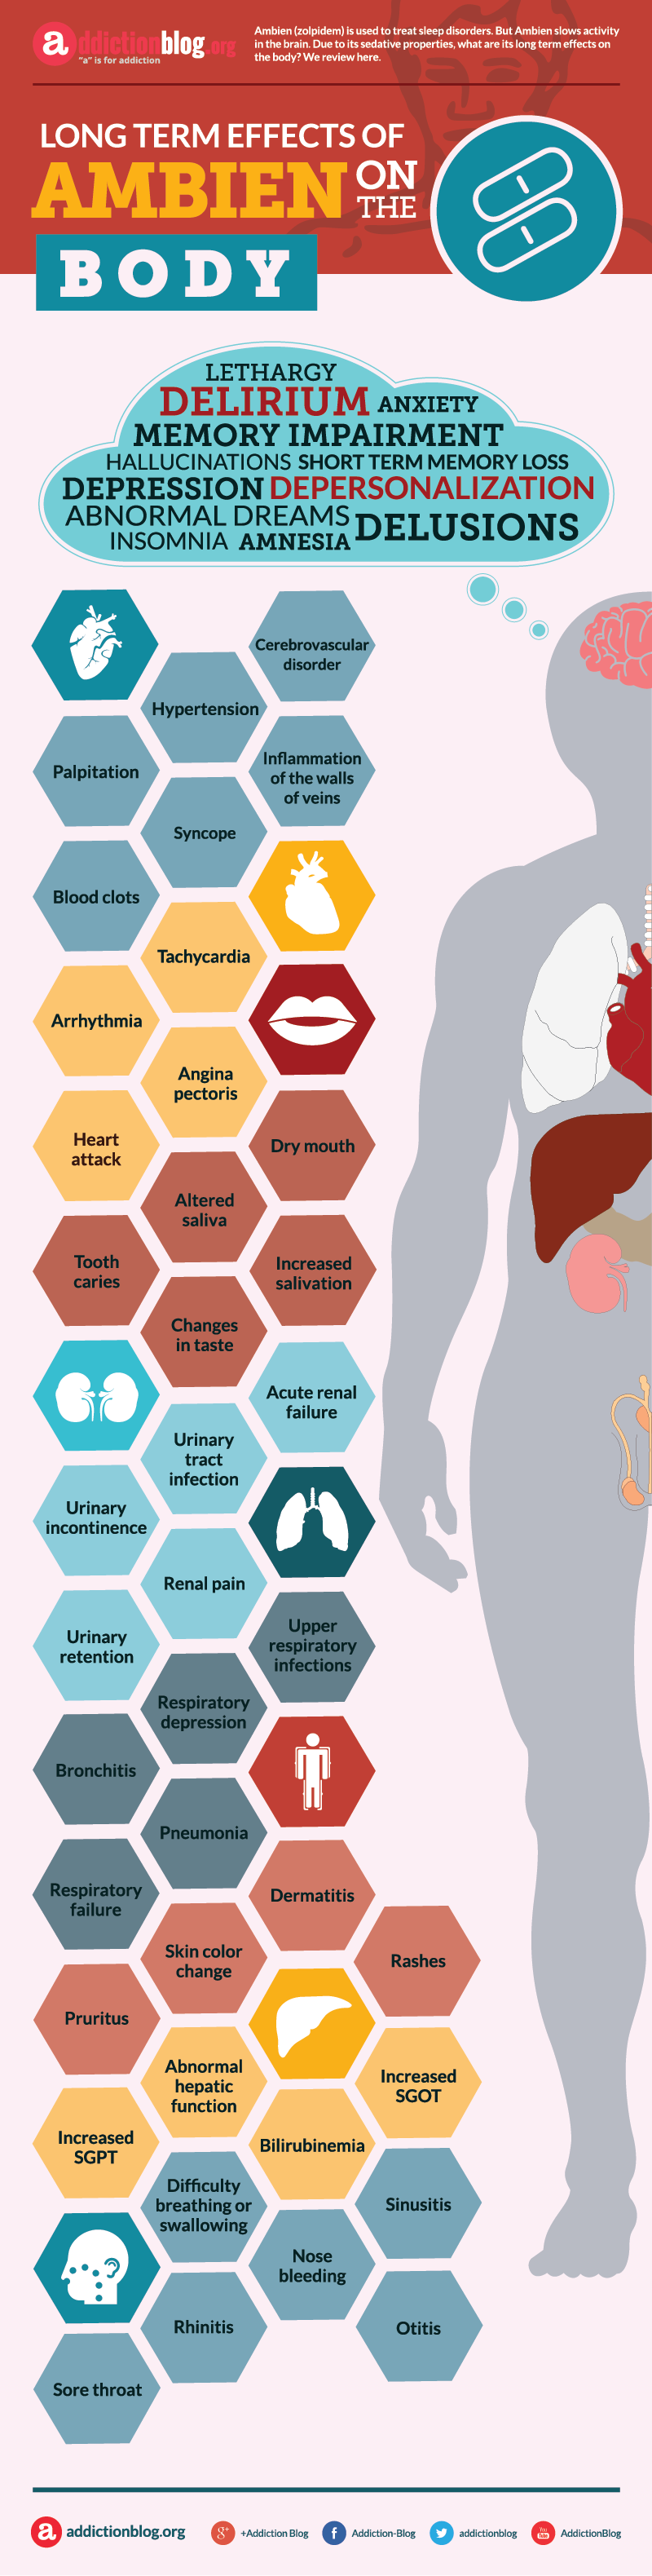 Long term effects of Ambien on the body (INFOGRAPHIC)